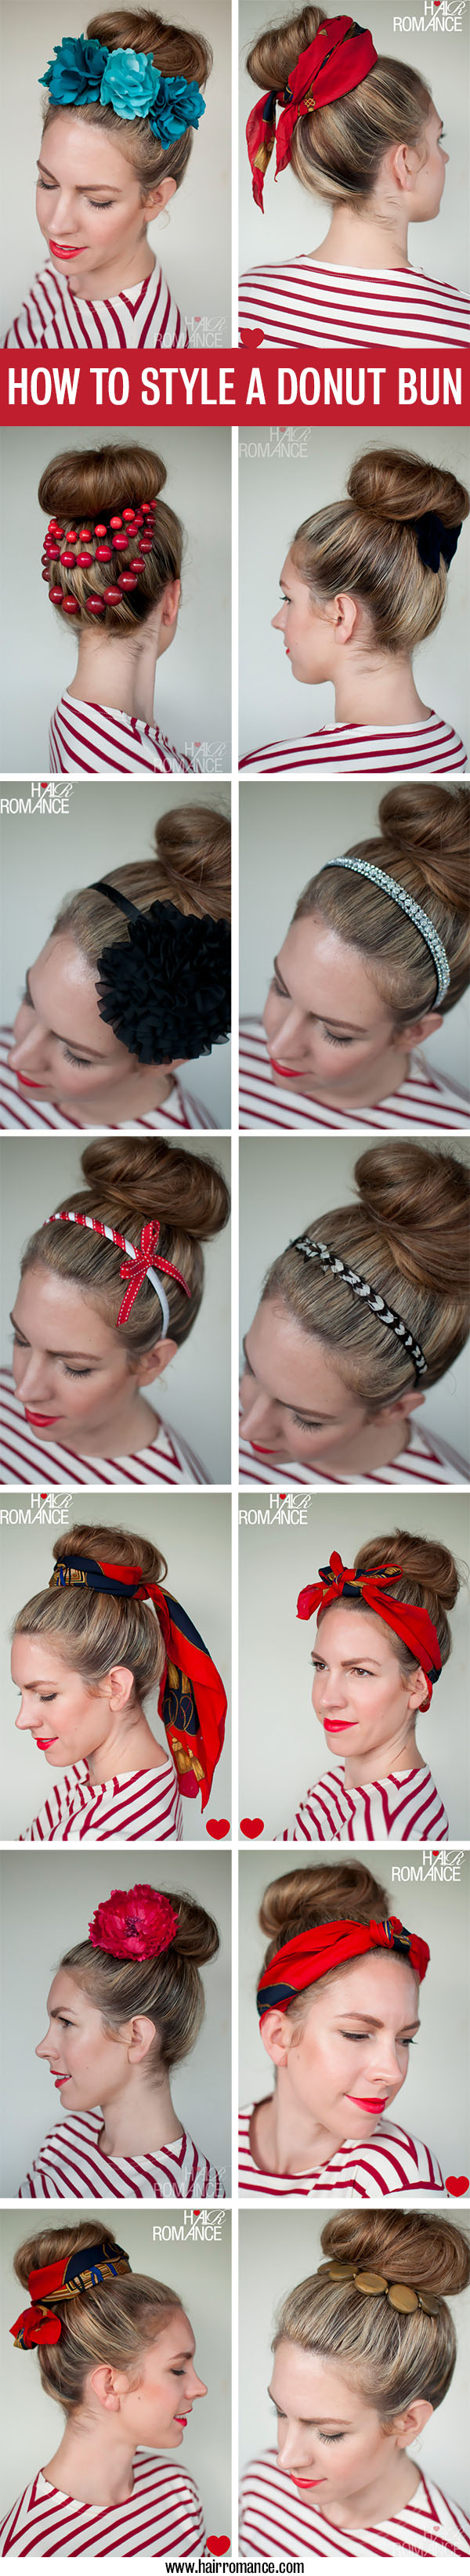 How to style a donut bun - Hair Romance